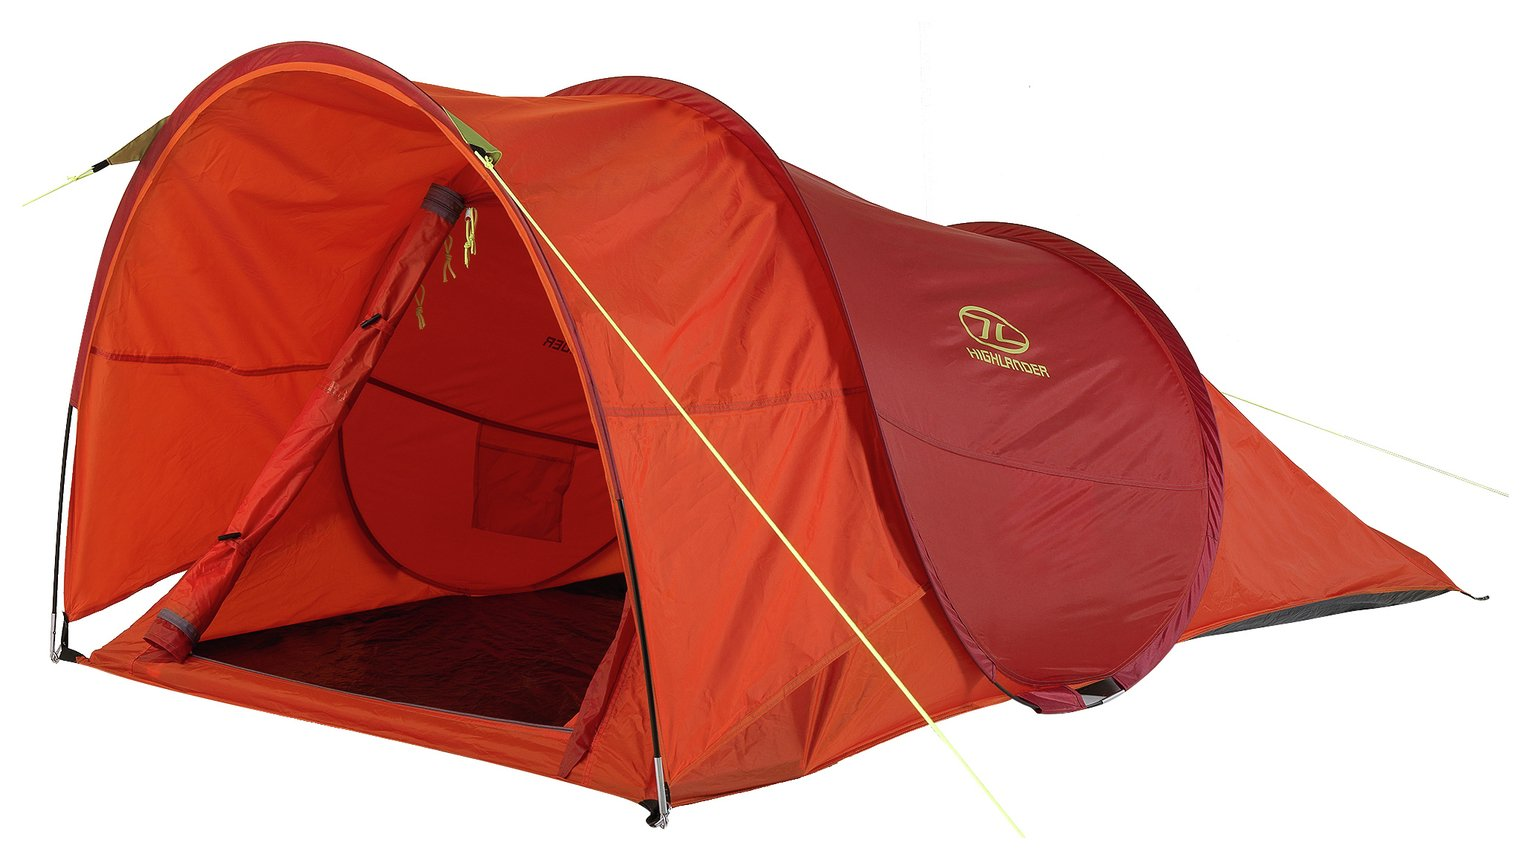 highlander 2 man pop up tent with awning